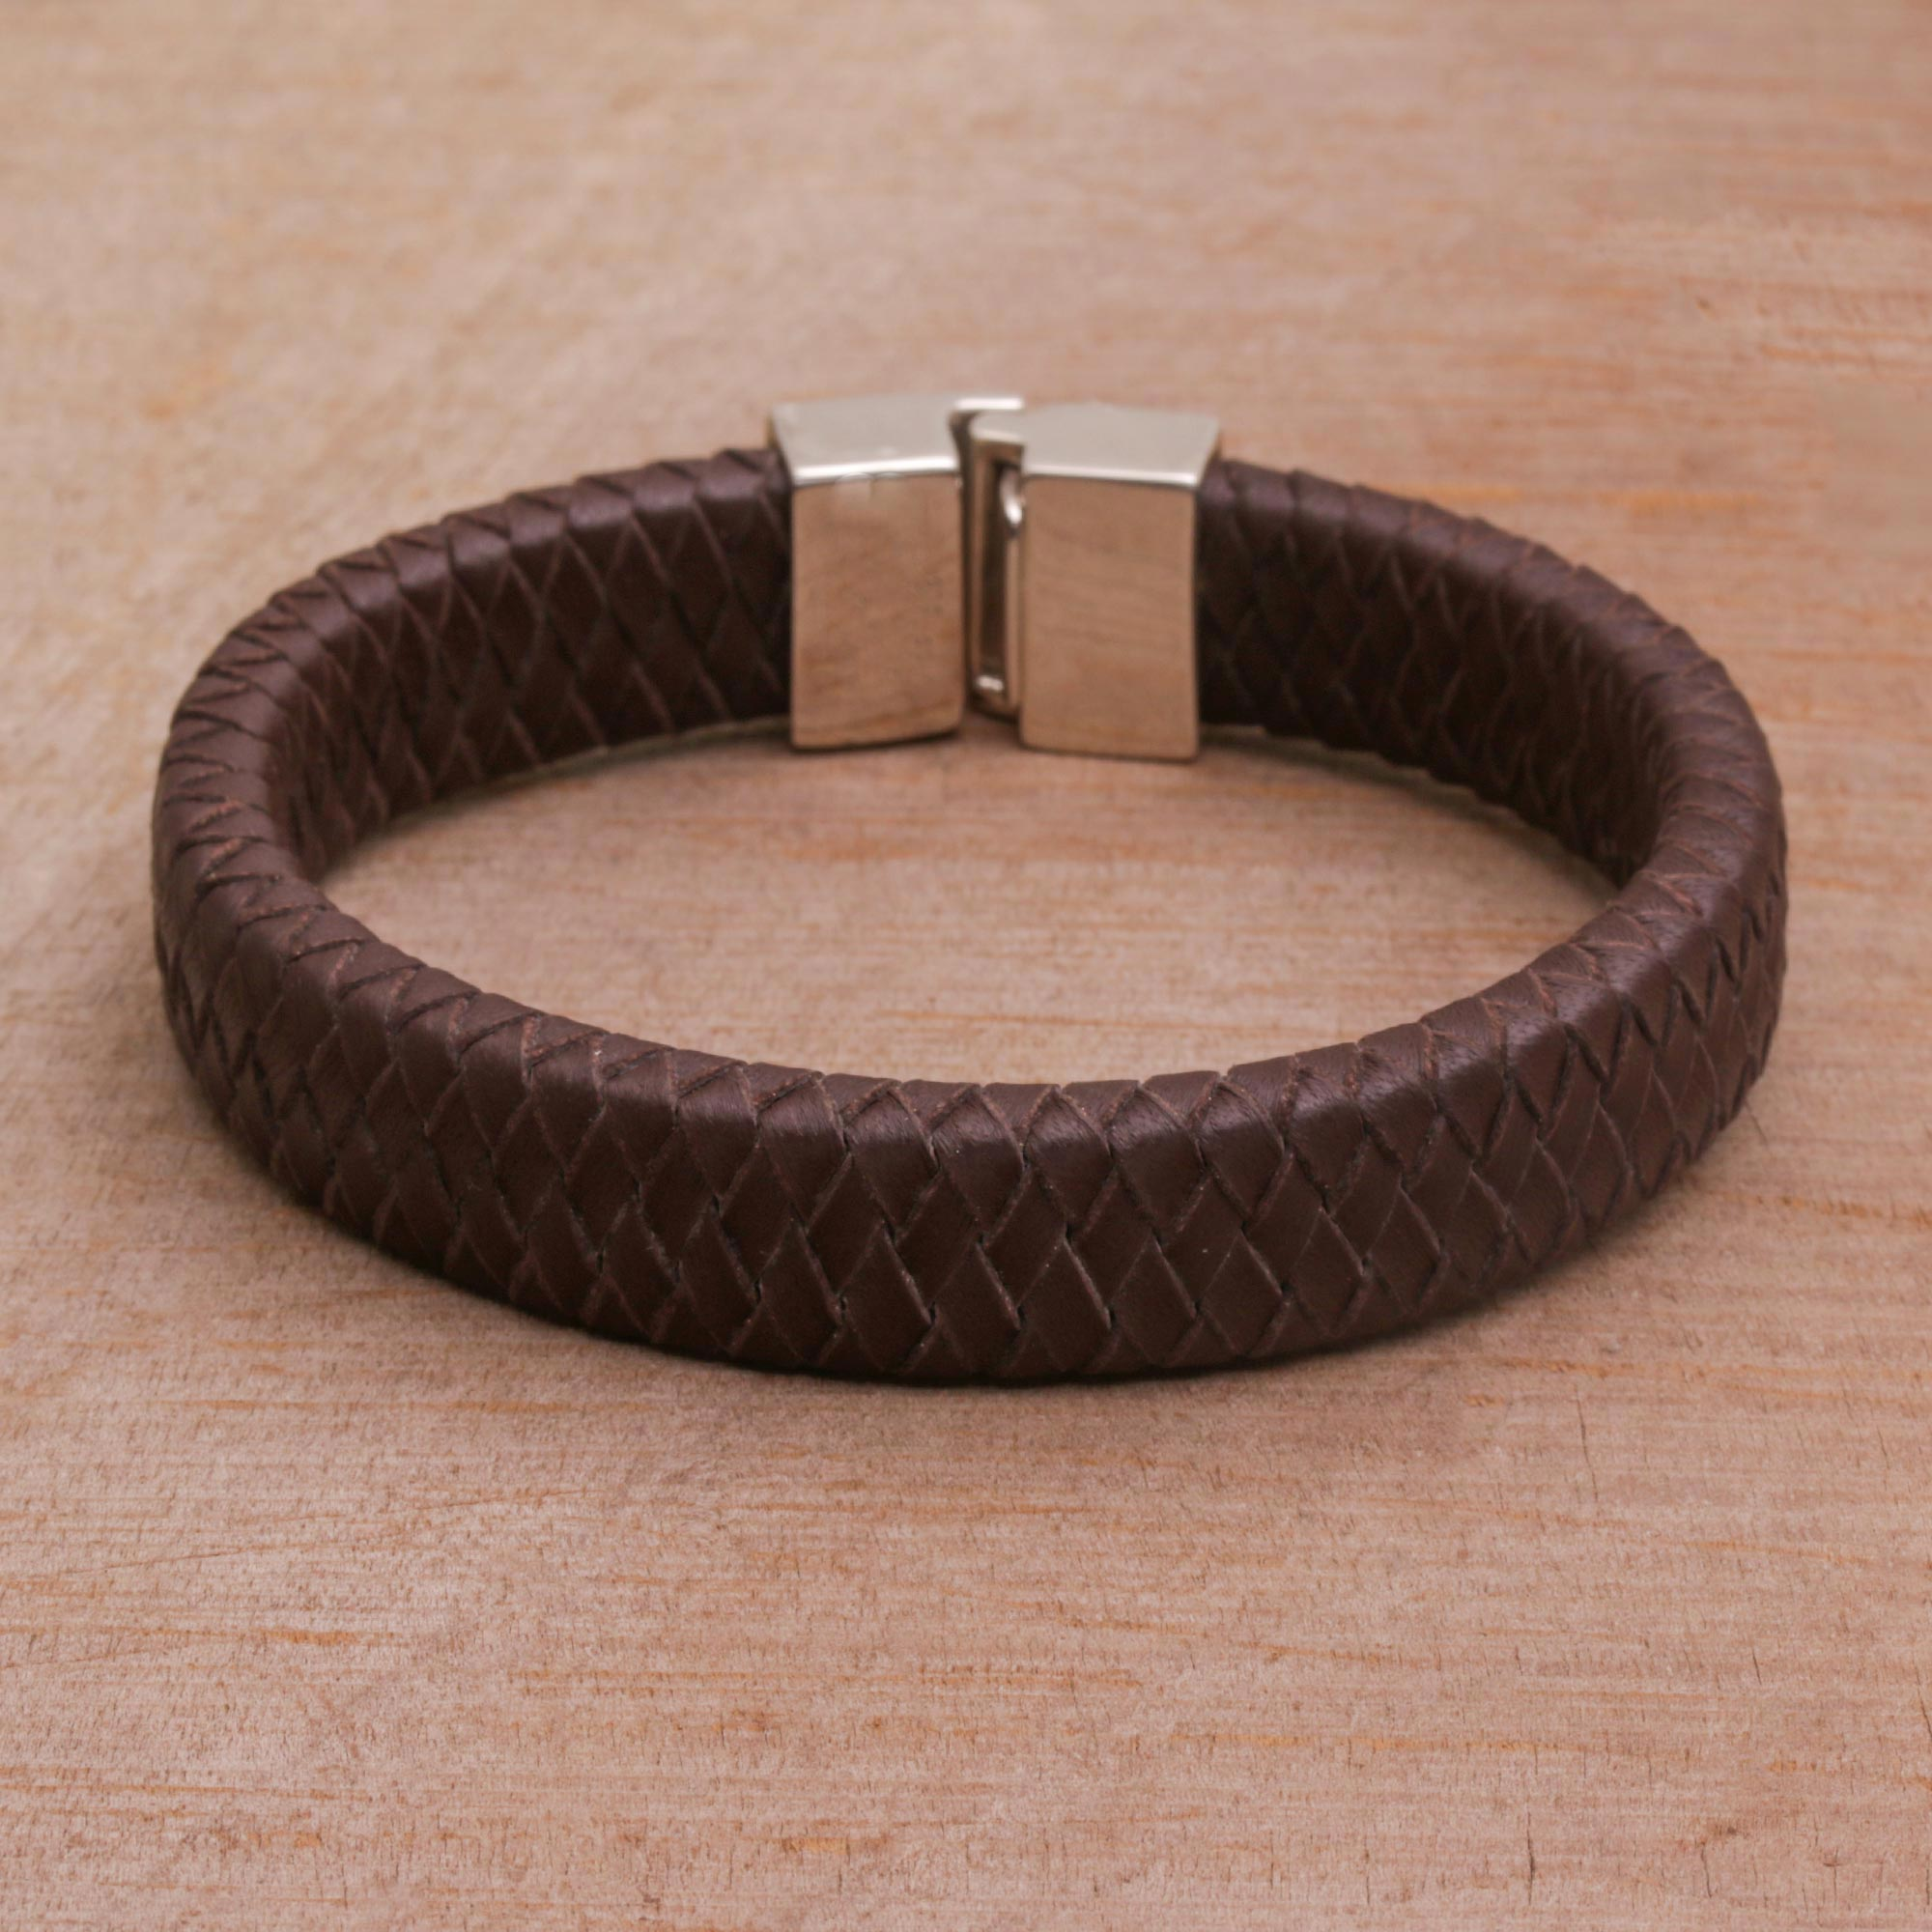 double collections catch male coasters sailormadeusa s bracelet rope bk men bracelets mens